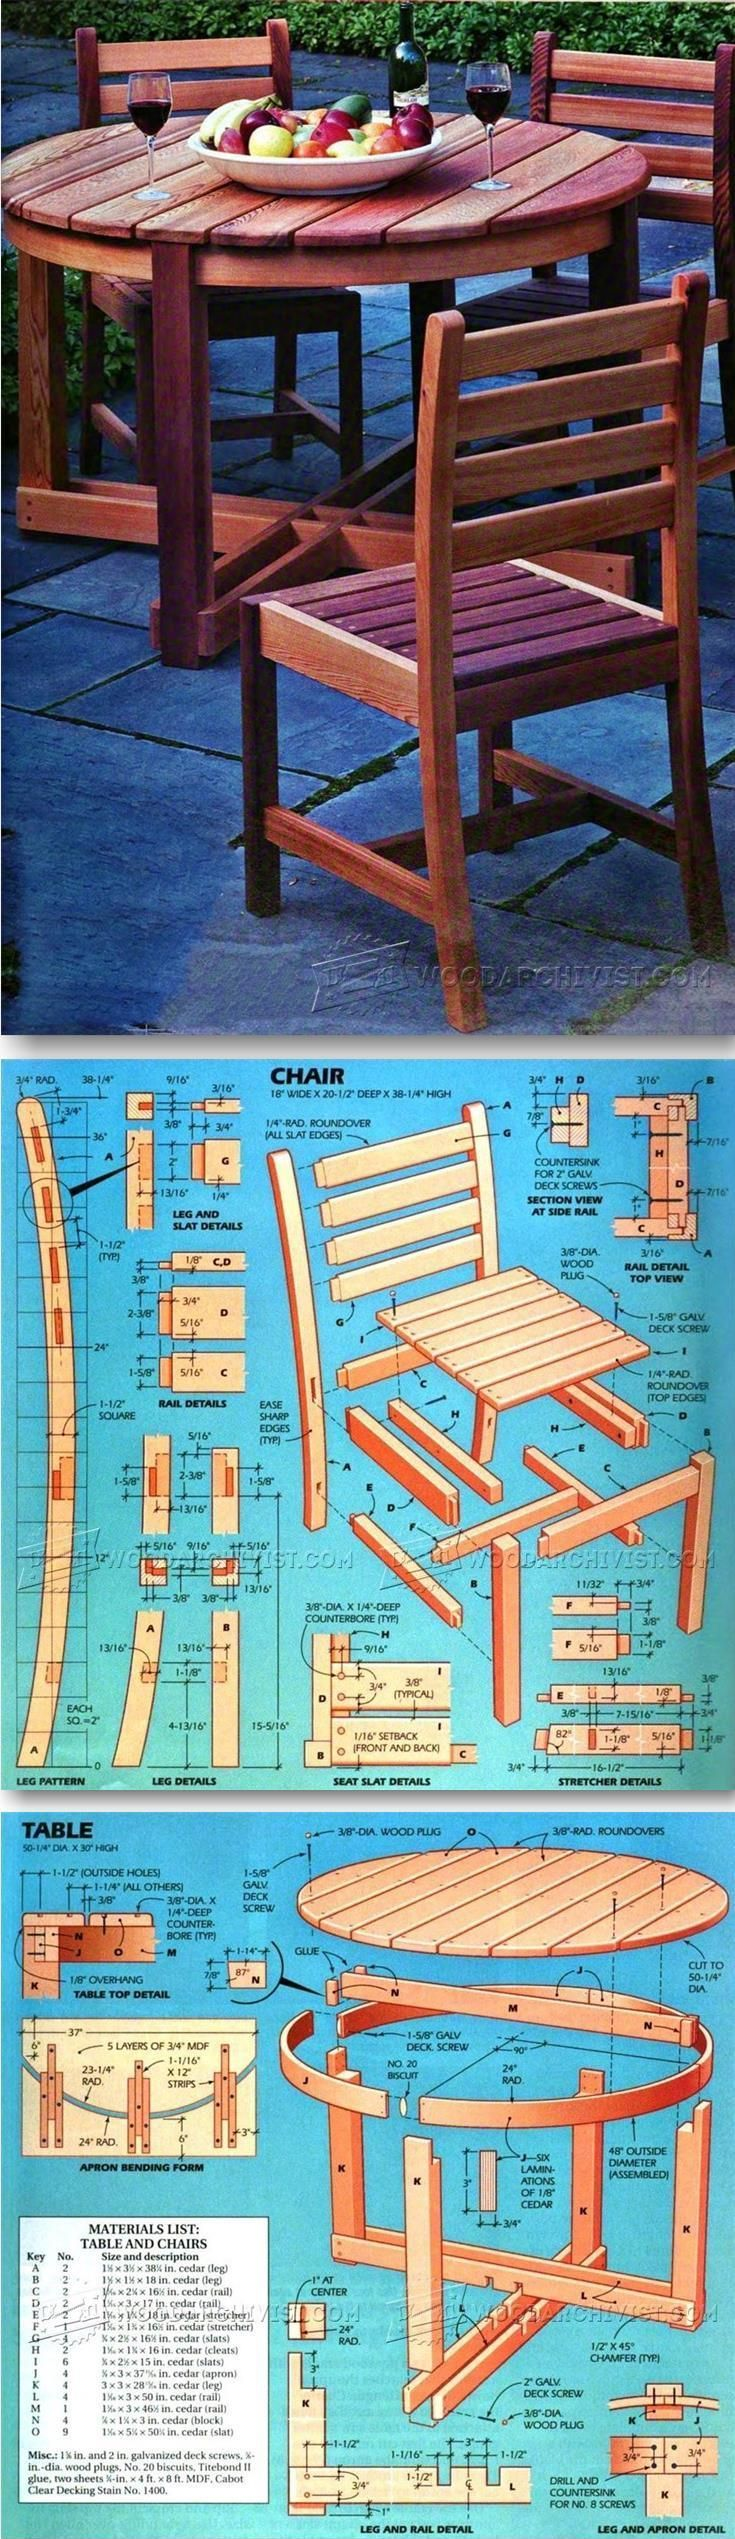 25 best outdoor furniture plans ideas on pinterest designer easy diy wood projects download outdoor furniture plansmodern baanklon Gallery